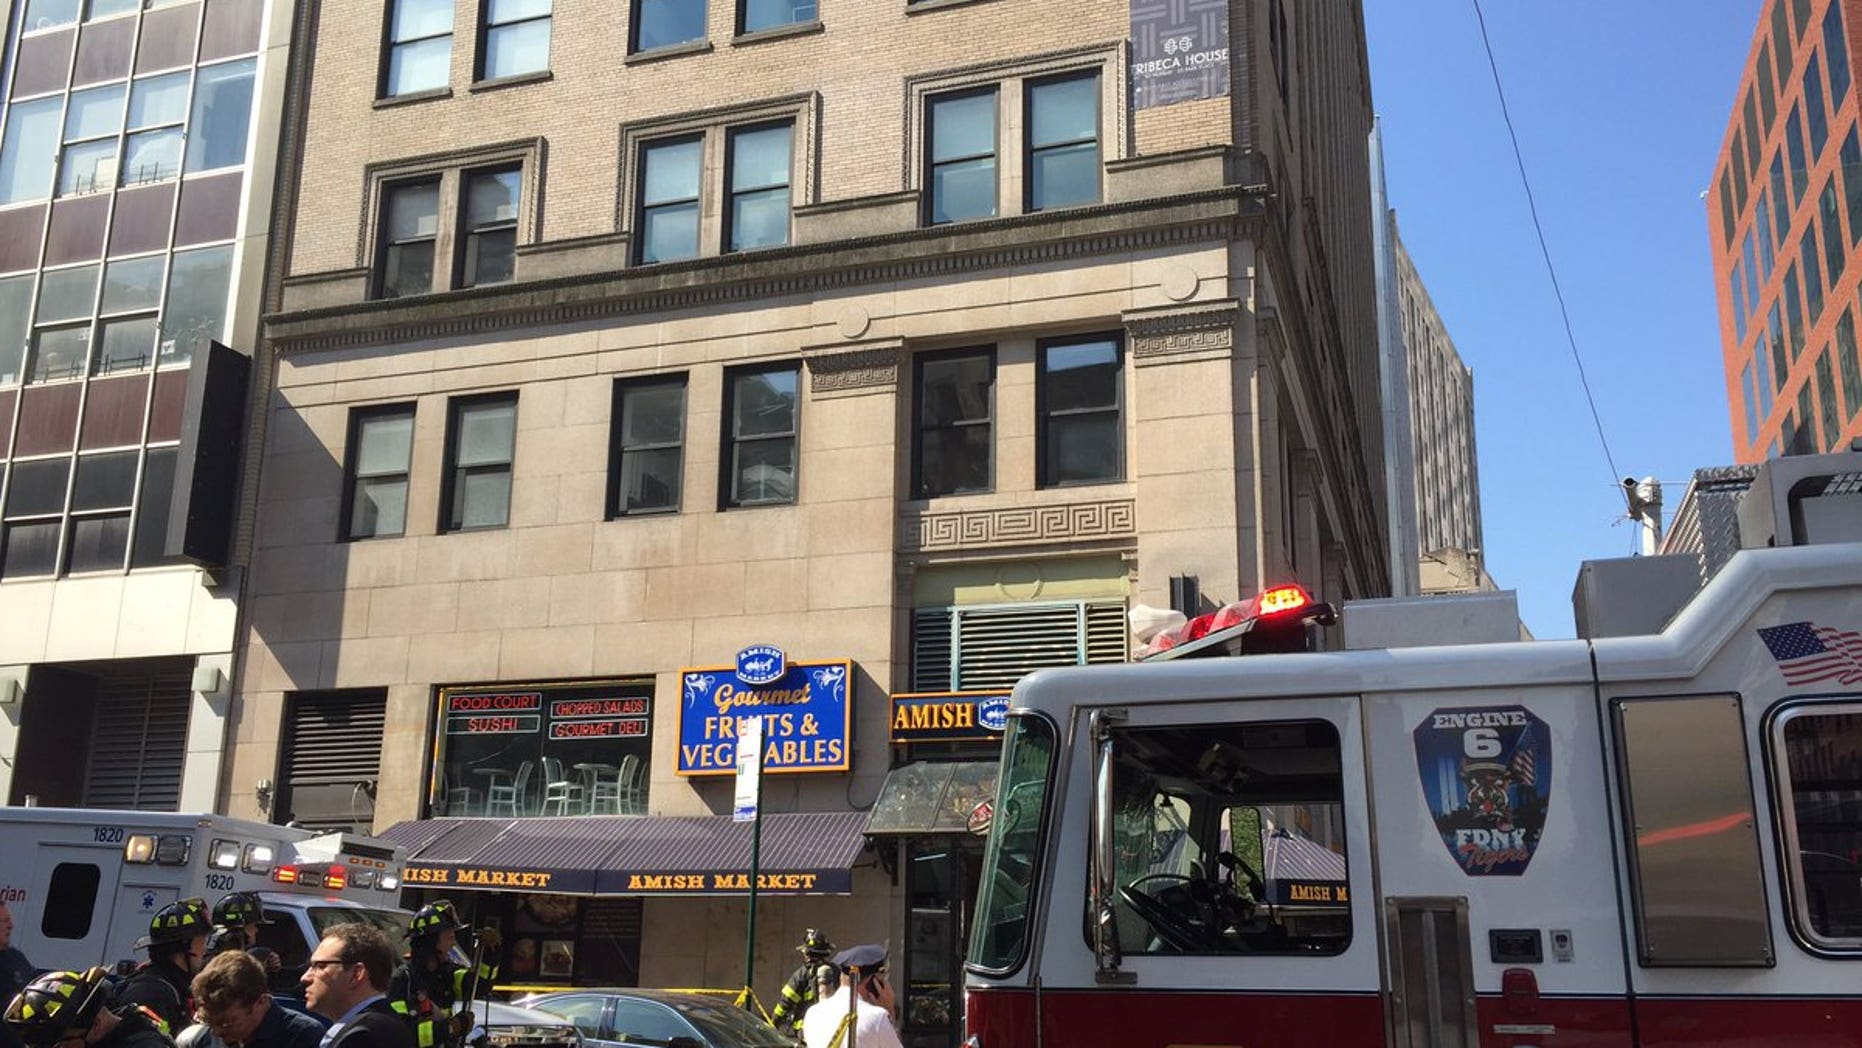 Thirty-four people were injured after fire erupted in a NYC high-rise that caused high levels of carbon monoxide in the building, FDNY said. (FDNY)